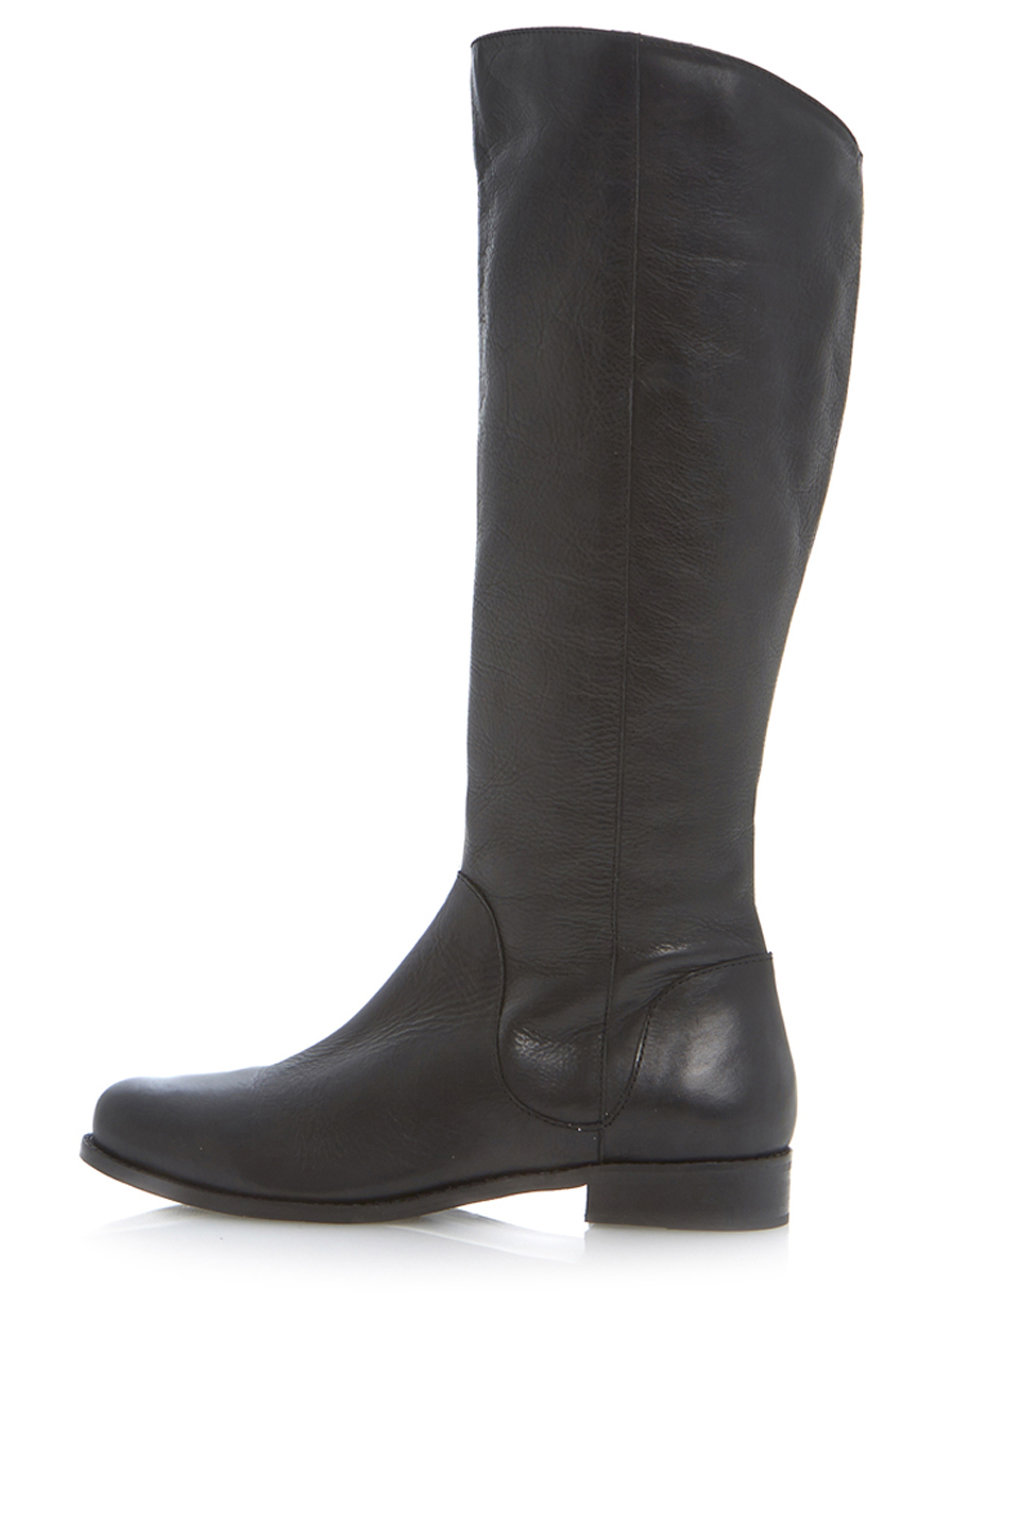 talent knee high boots by dune shoe brands shoes